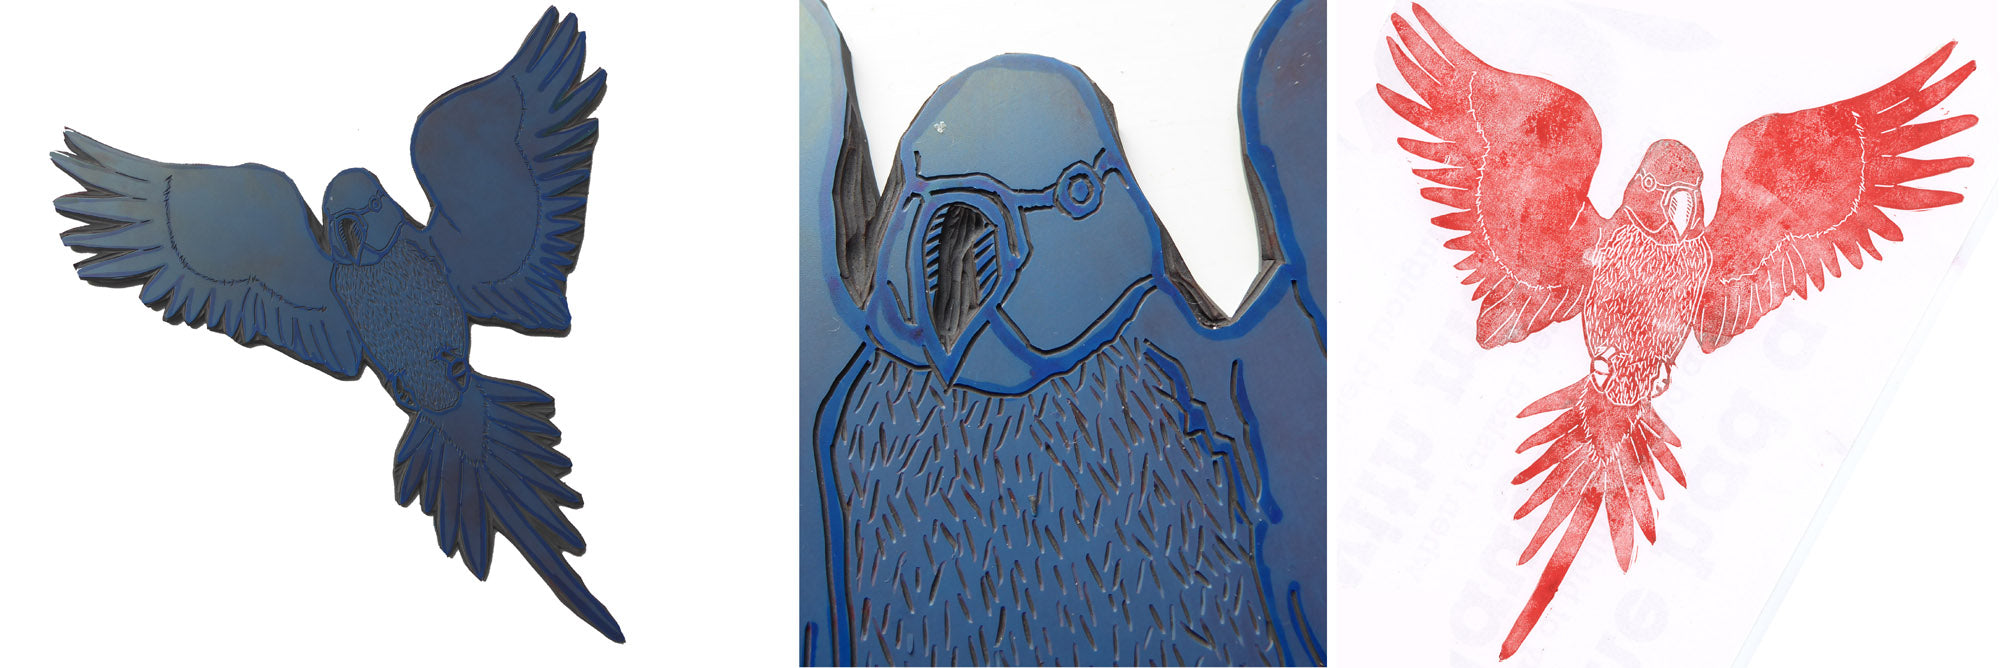 Linocut of parakeet in draft form